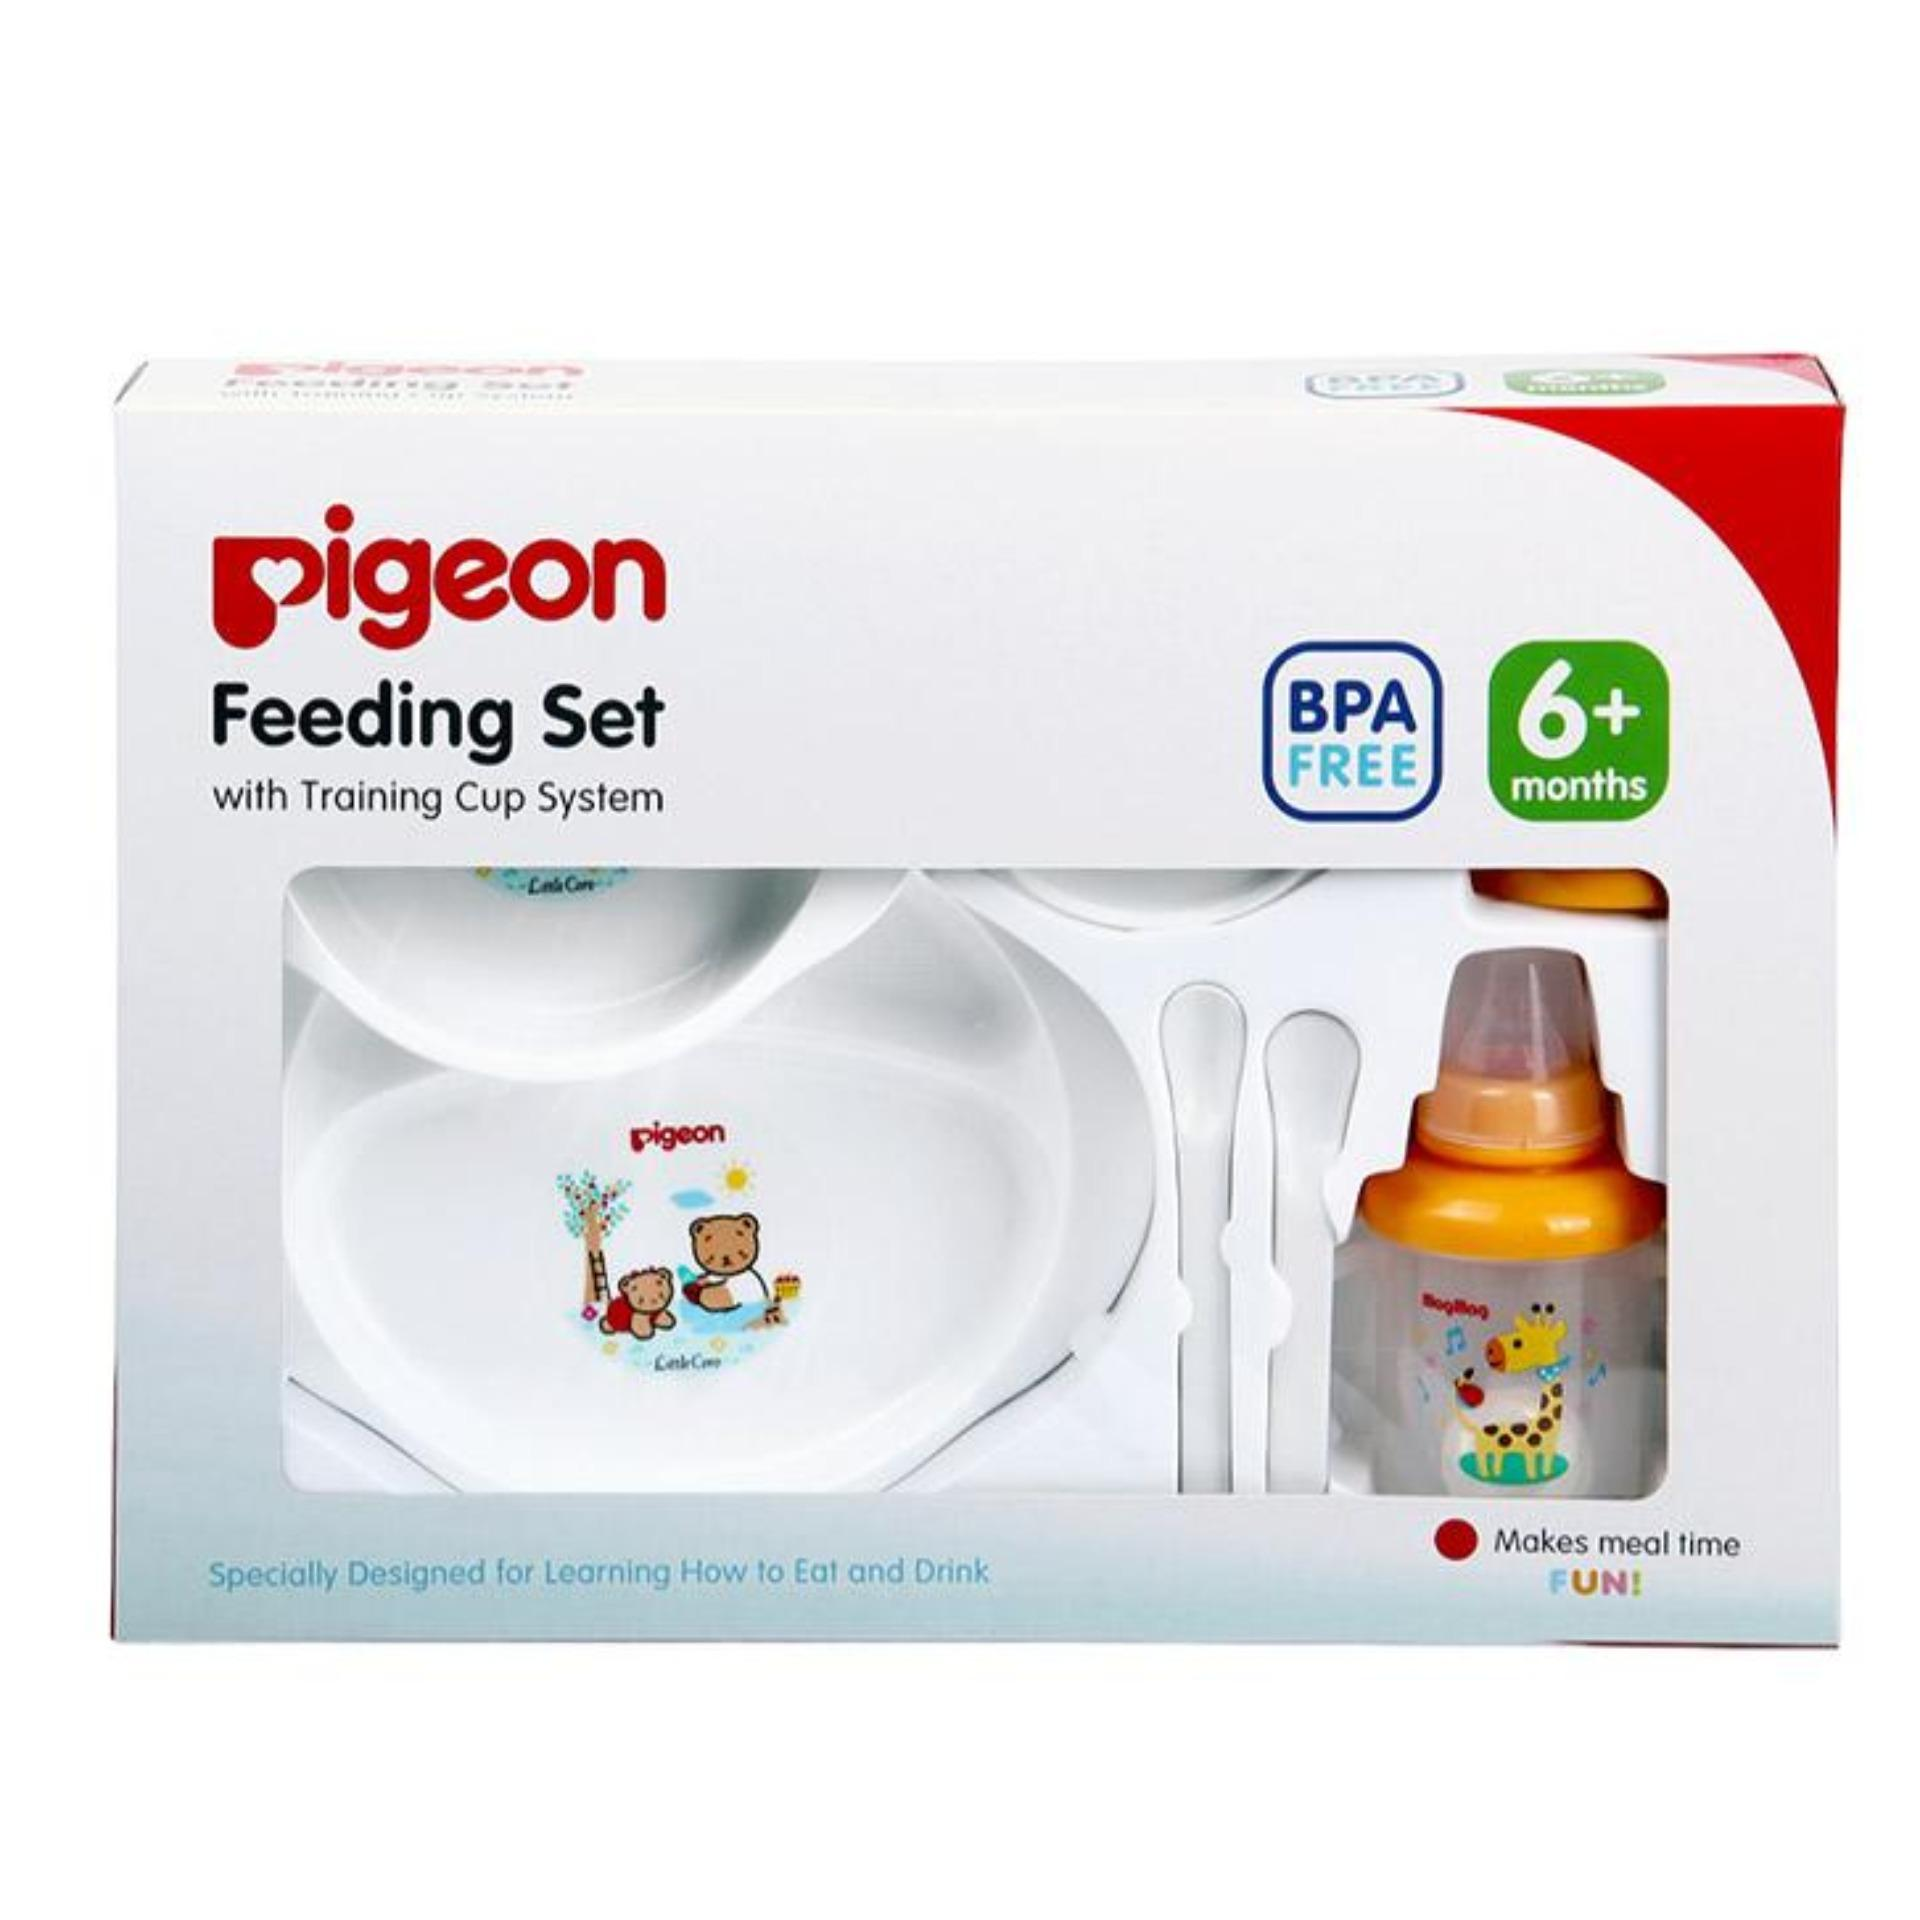 Perlengkapan Makan Bayi Terlengkap Hot  Pigeon Home Baby Food Maker Alat Pembuat Mpasi Feeding Set Large With Training Cup